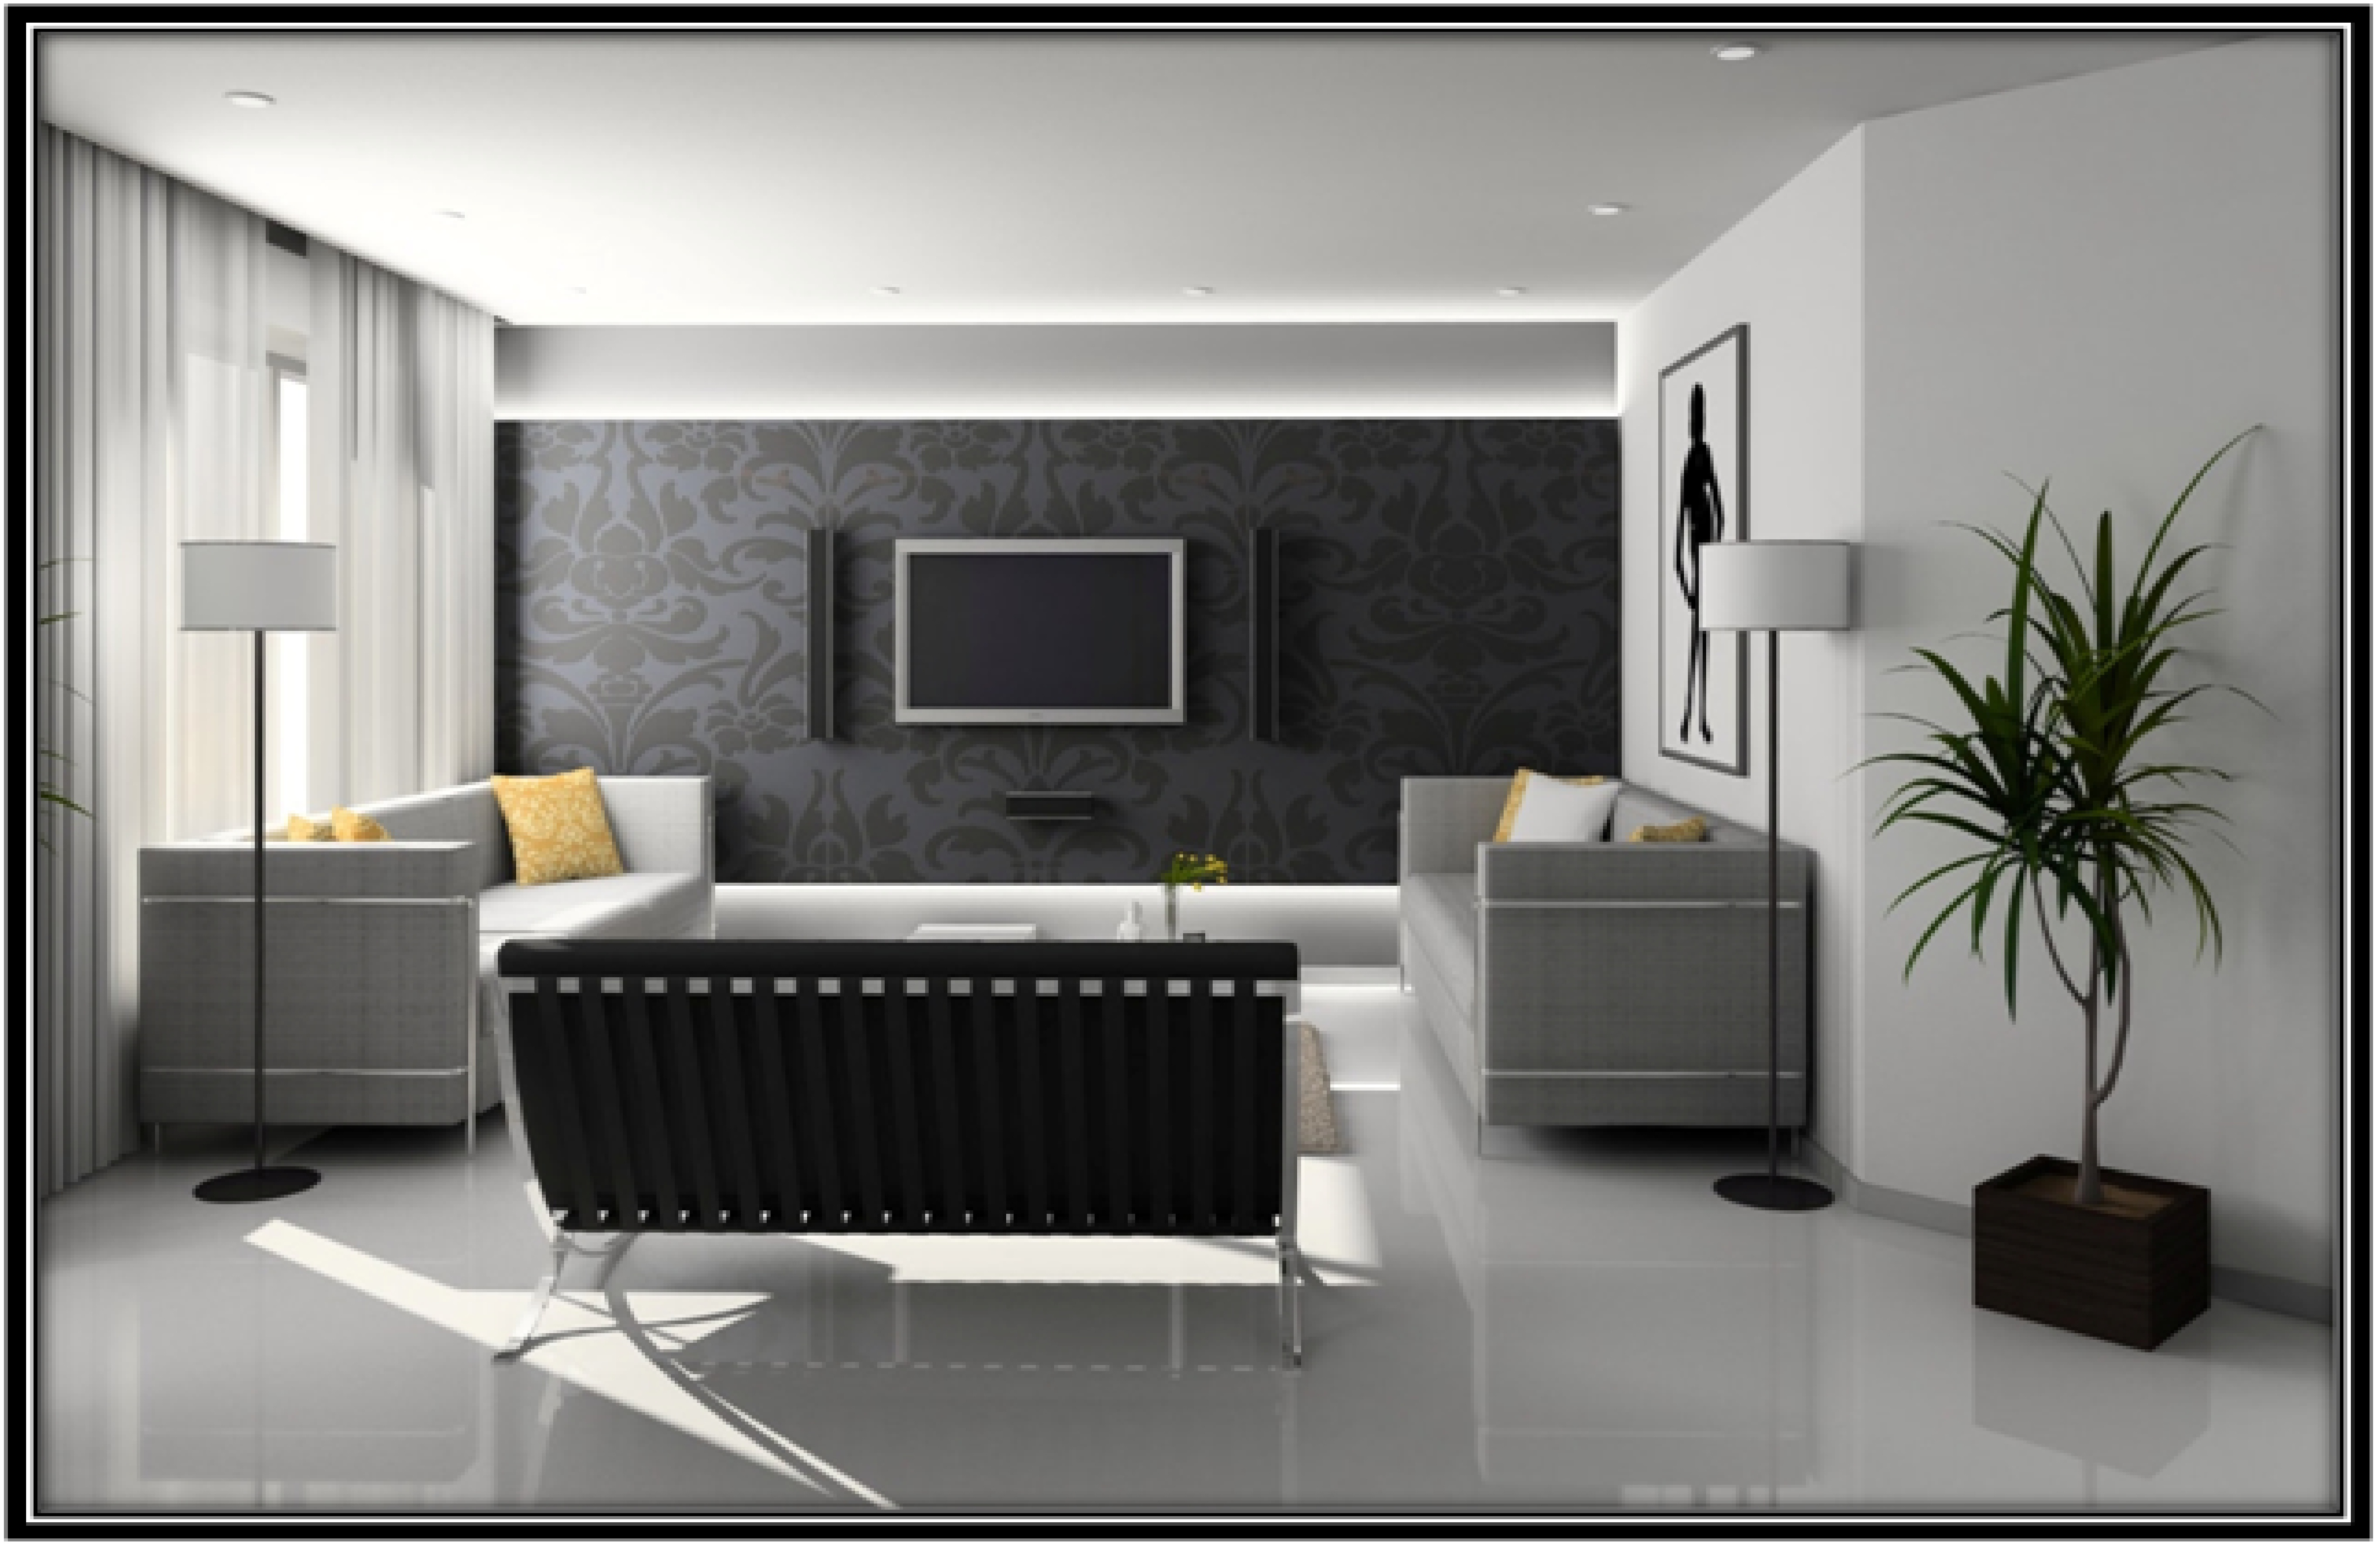 Great Decor Ideas For Every Space In Your Home- Home Decor Ideas